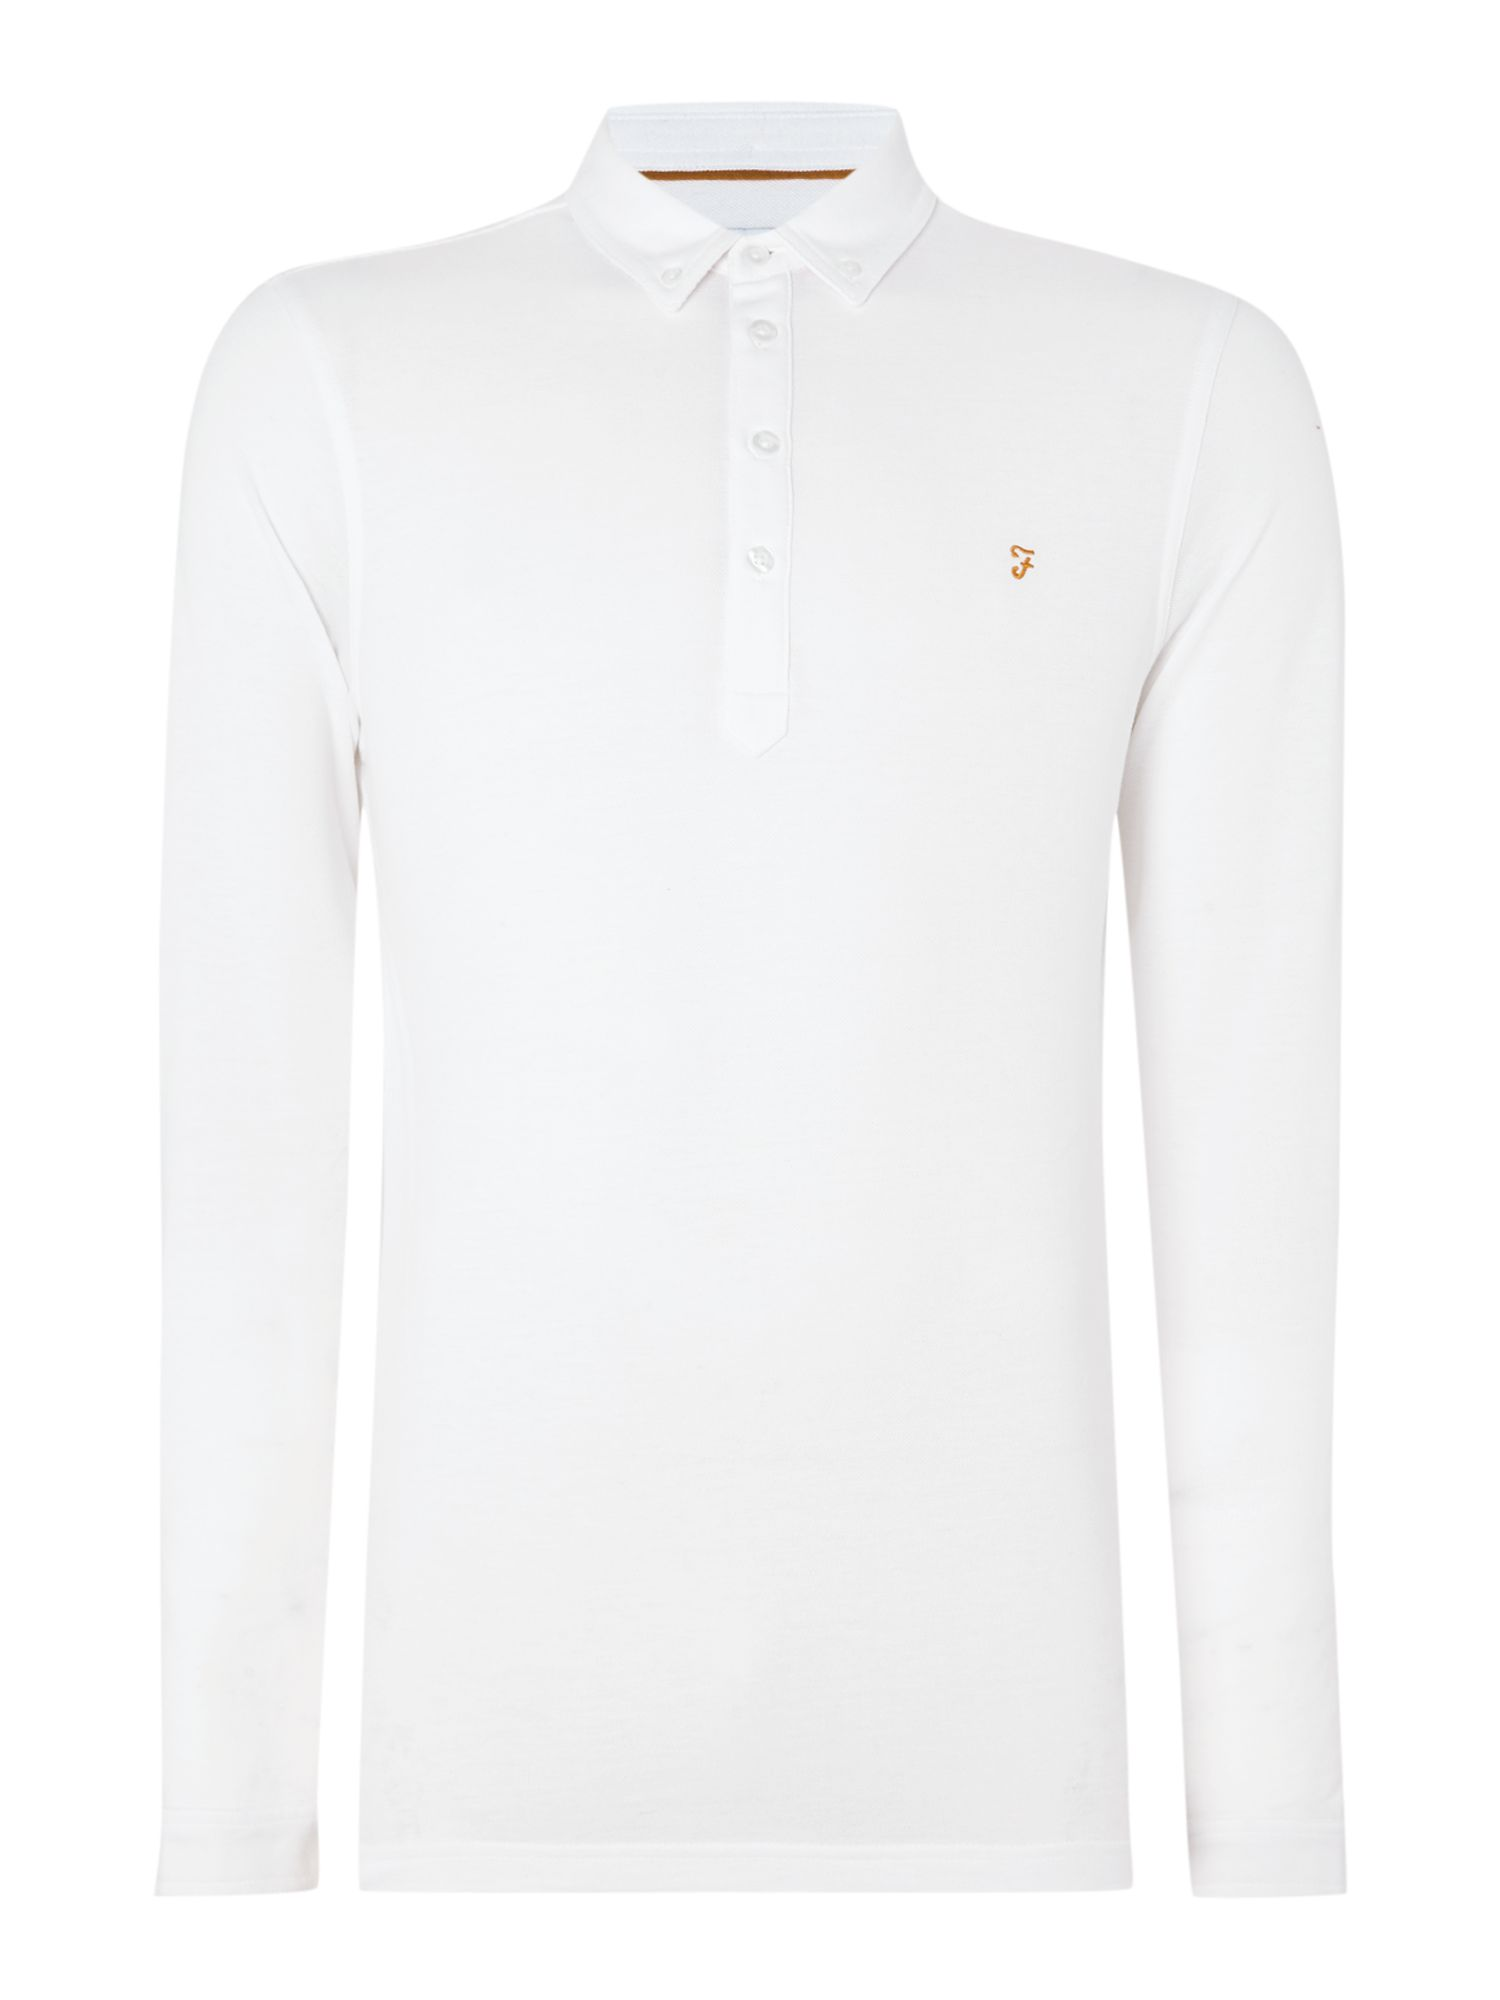 Men's Farah Merriweather regular fit long sleeve polo shirt, White